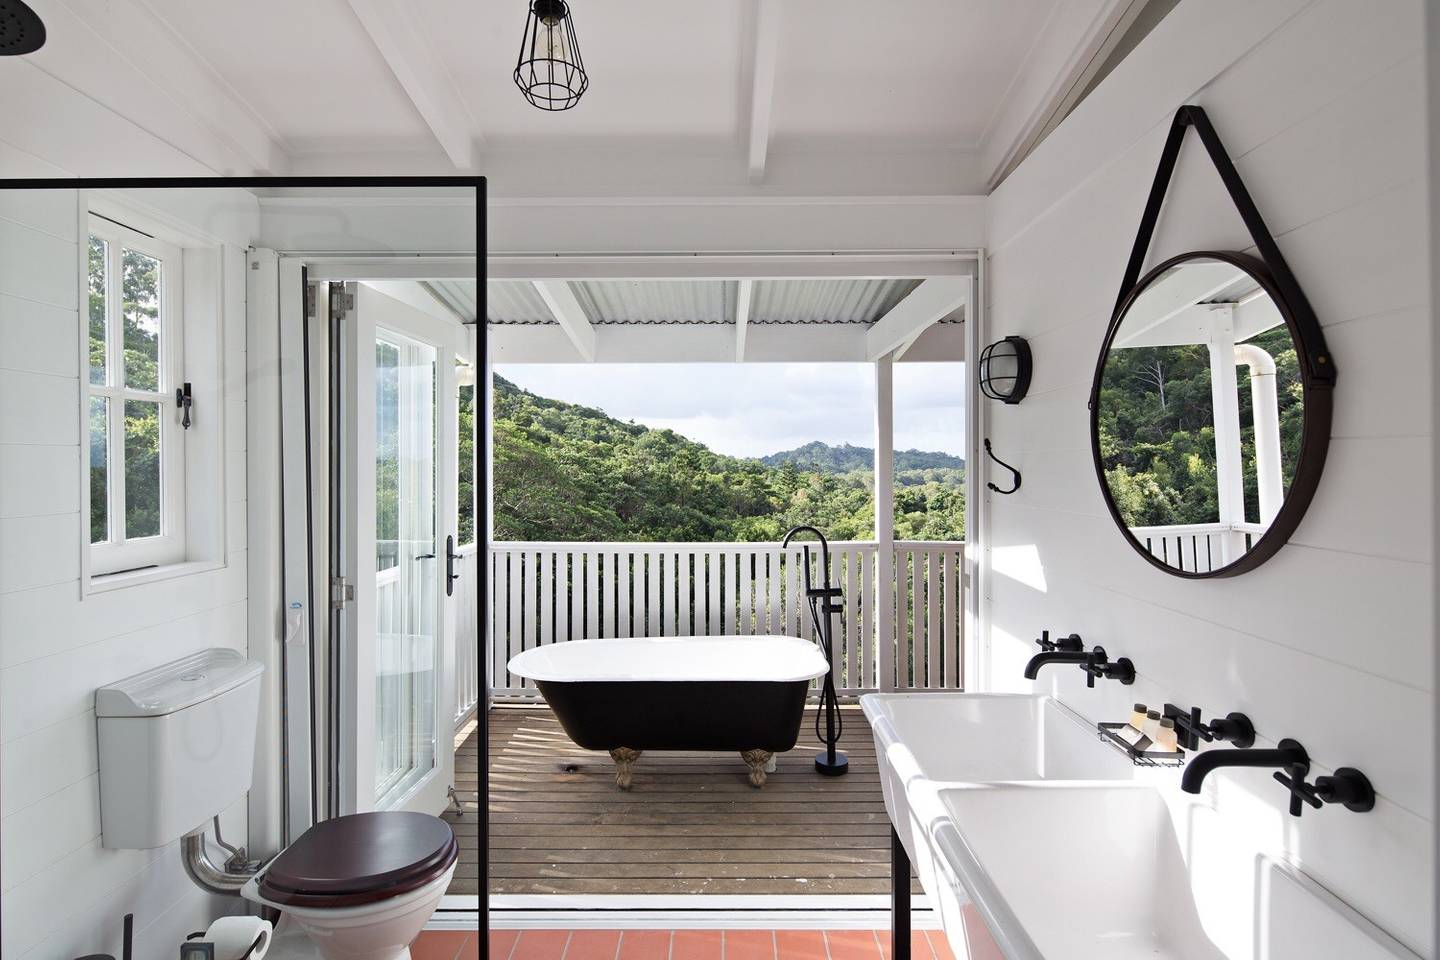 A cute little cottage perched on the hillside in the Noosa hinterland